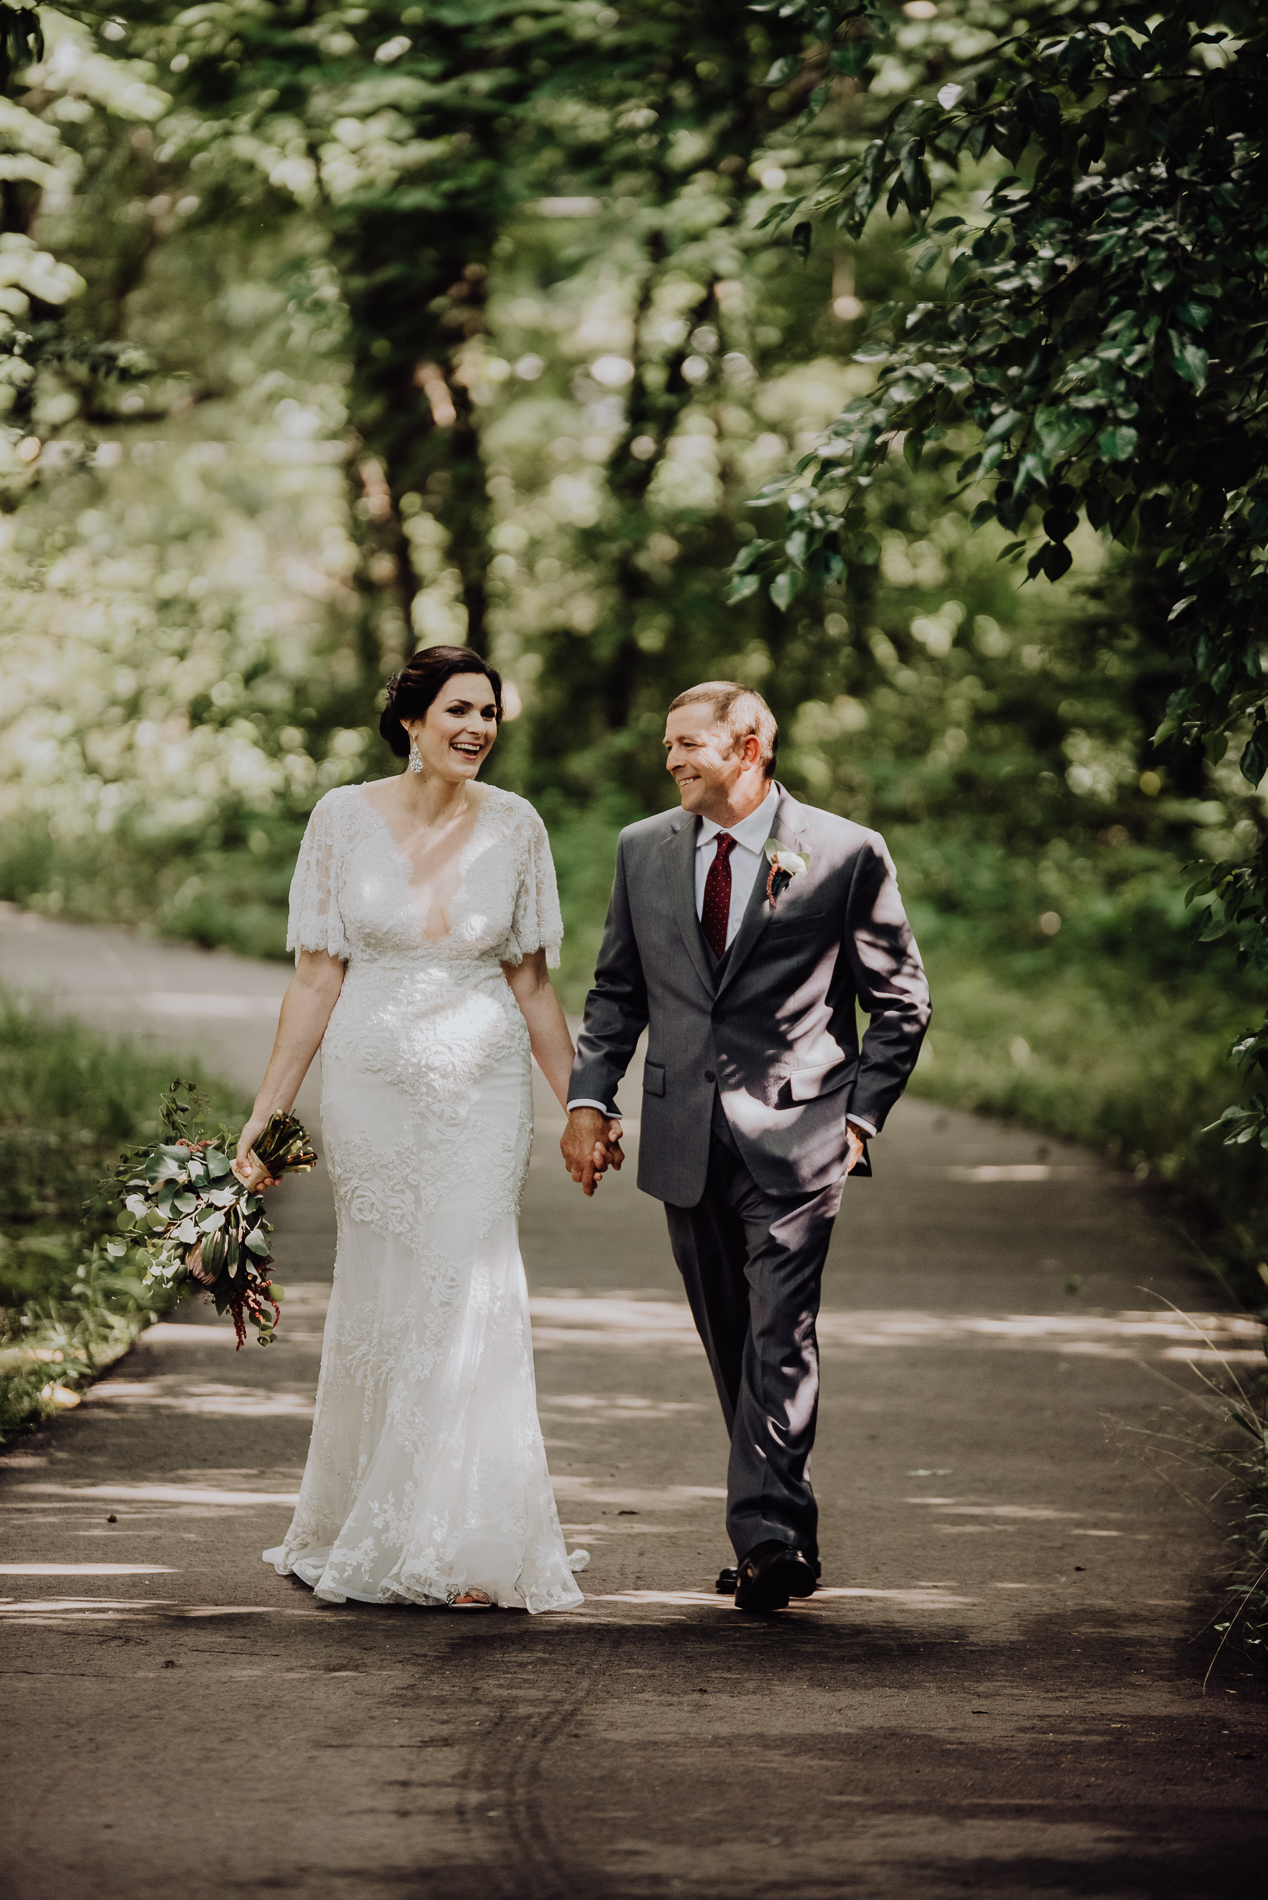 julia and dennis wedding at graceland by wilde company-105.jpg